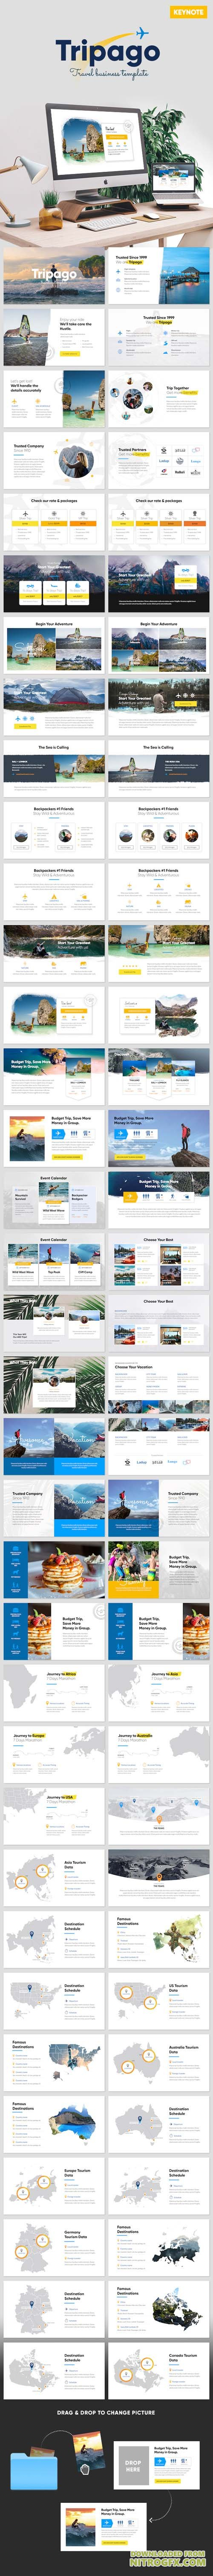 Tripago - Travelling Business Keynote Template 20758016